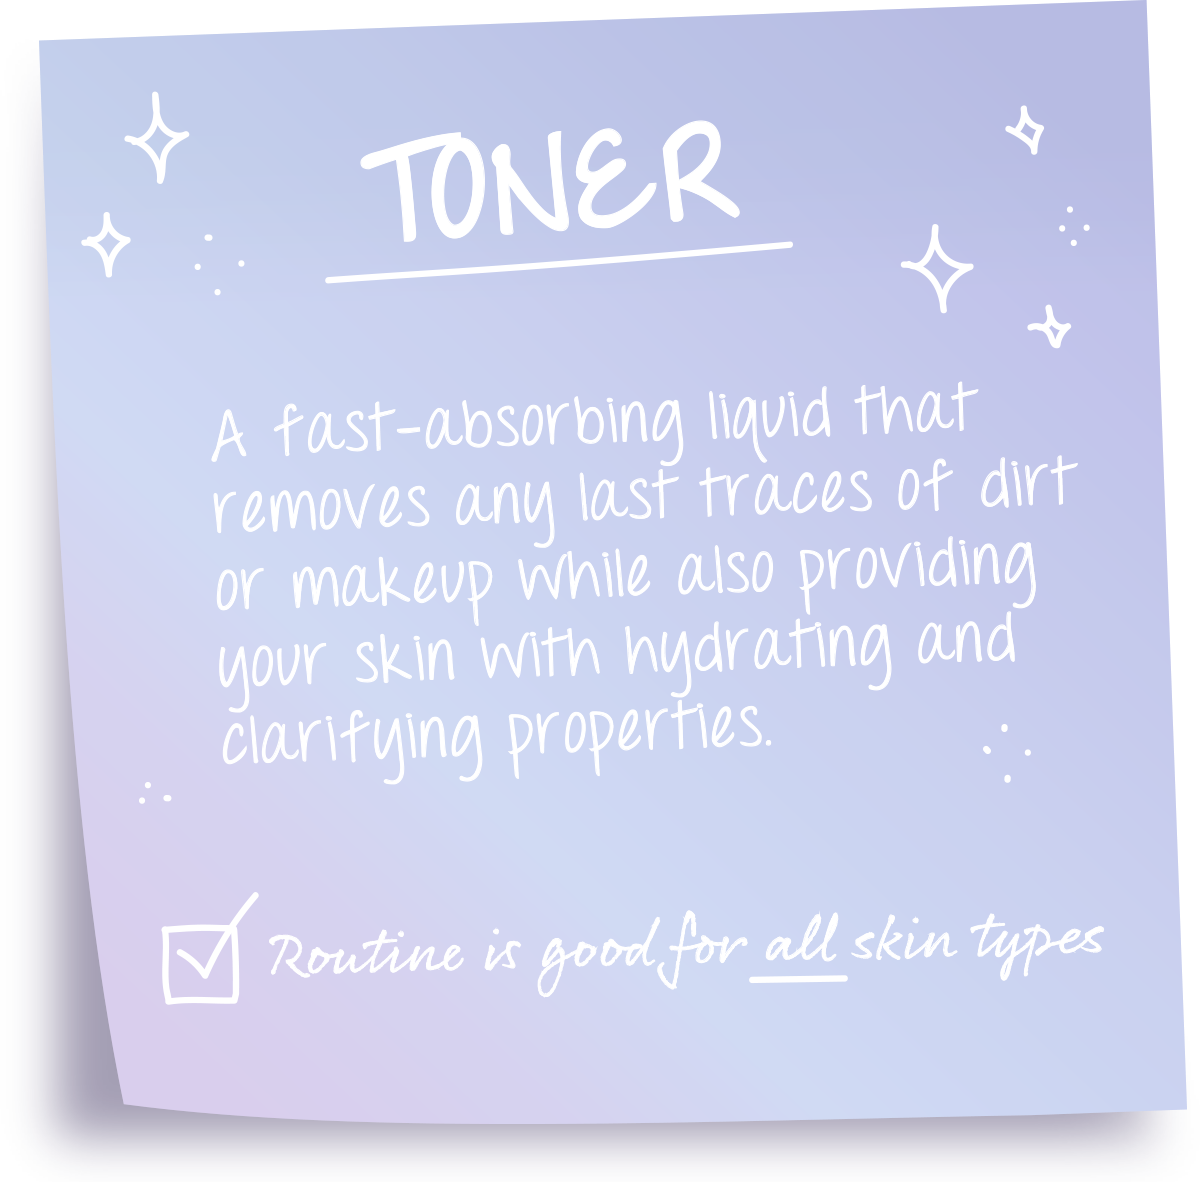 Toners: A fast-absorbing liquid that removes any last traces of dirt or makeup while also providing your skin with hydrating and clarifying properties. Routine is good for all skin types